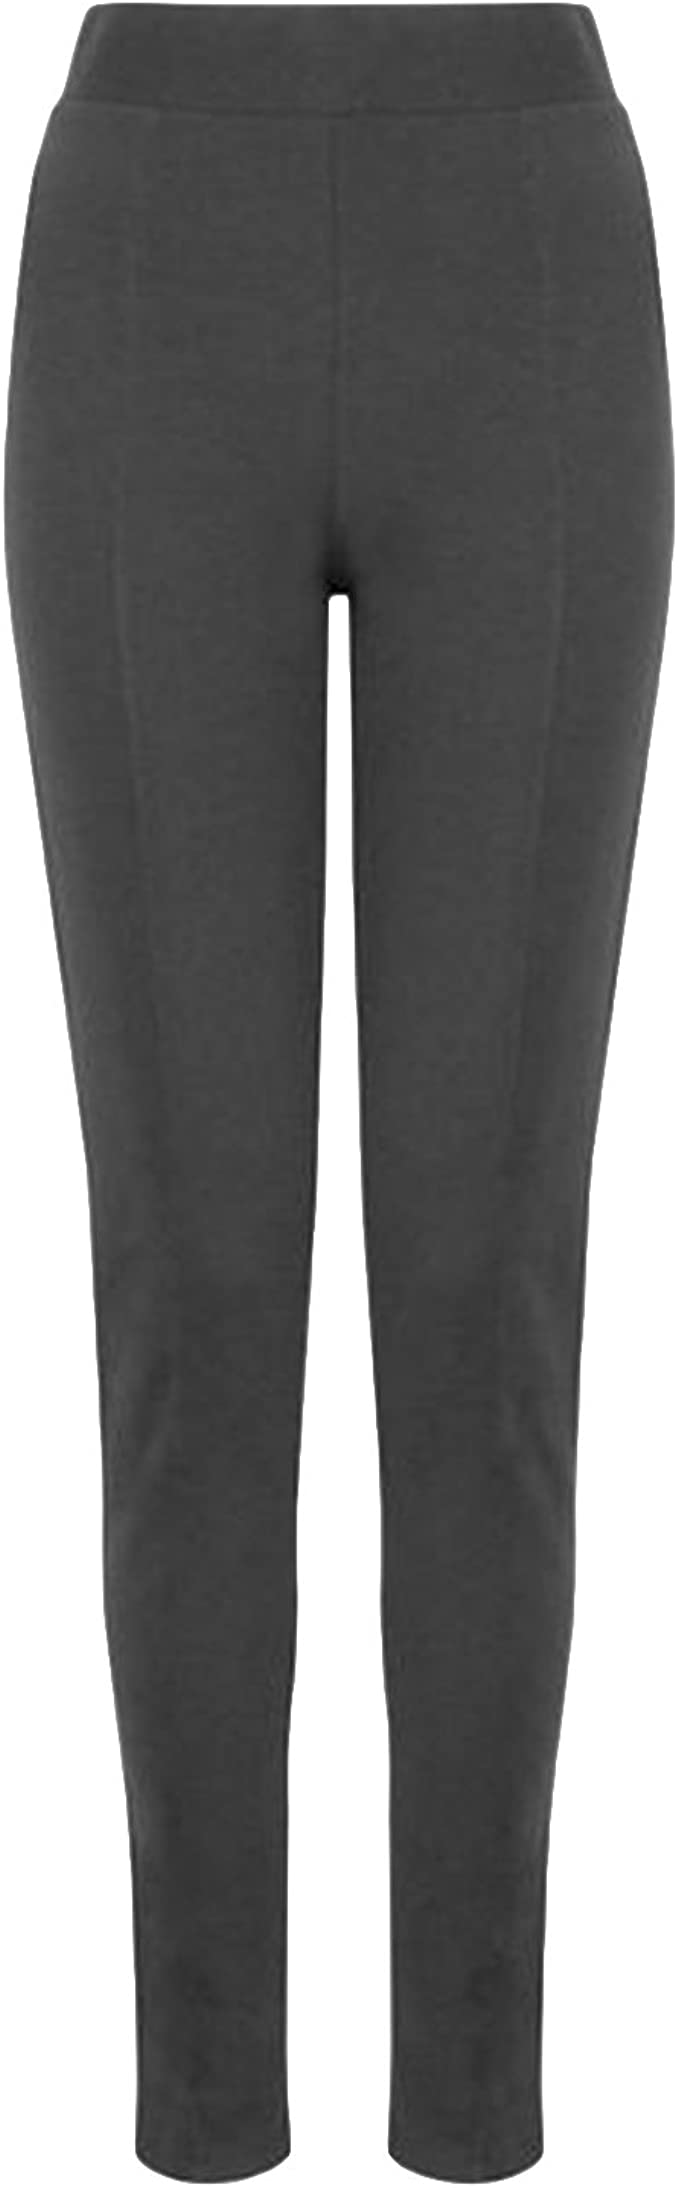 EX M/&S STRAIGHT LEG BLACK TREGGINGS PLUS SIZE 22 M  FREE P/&P